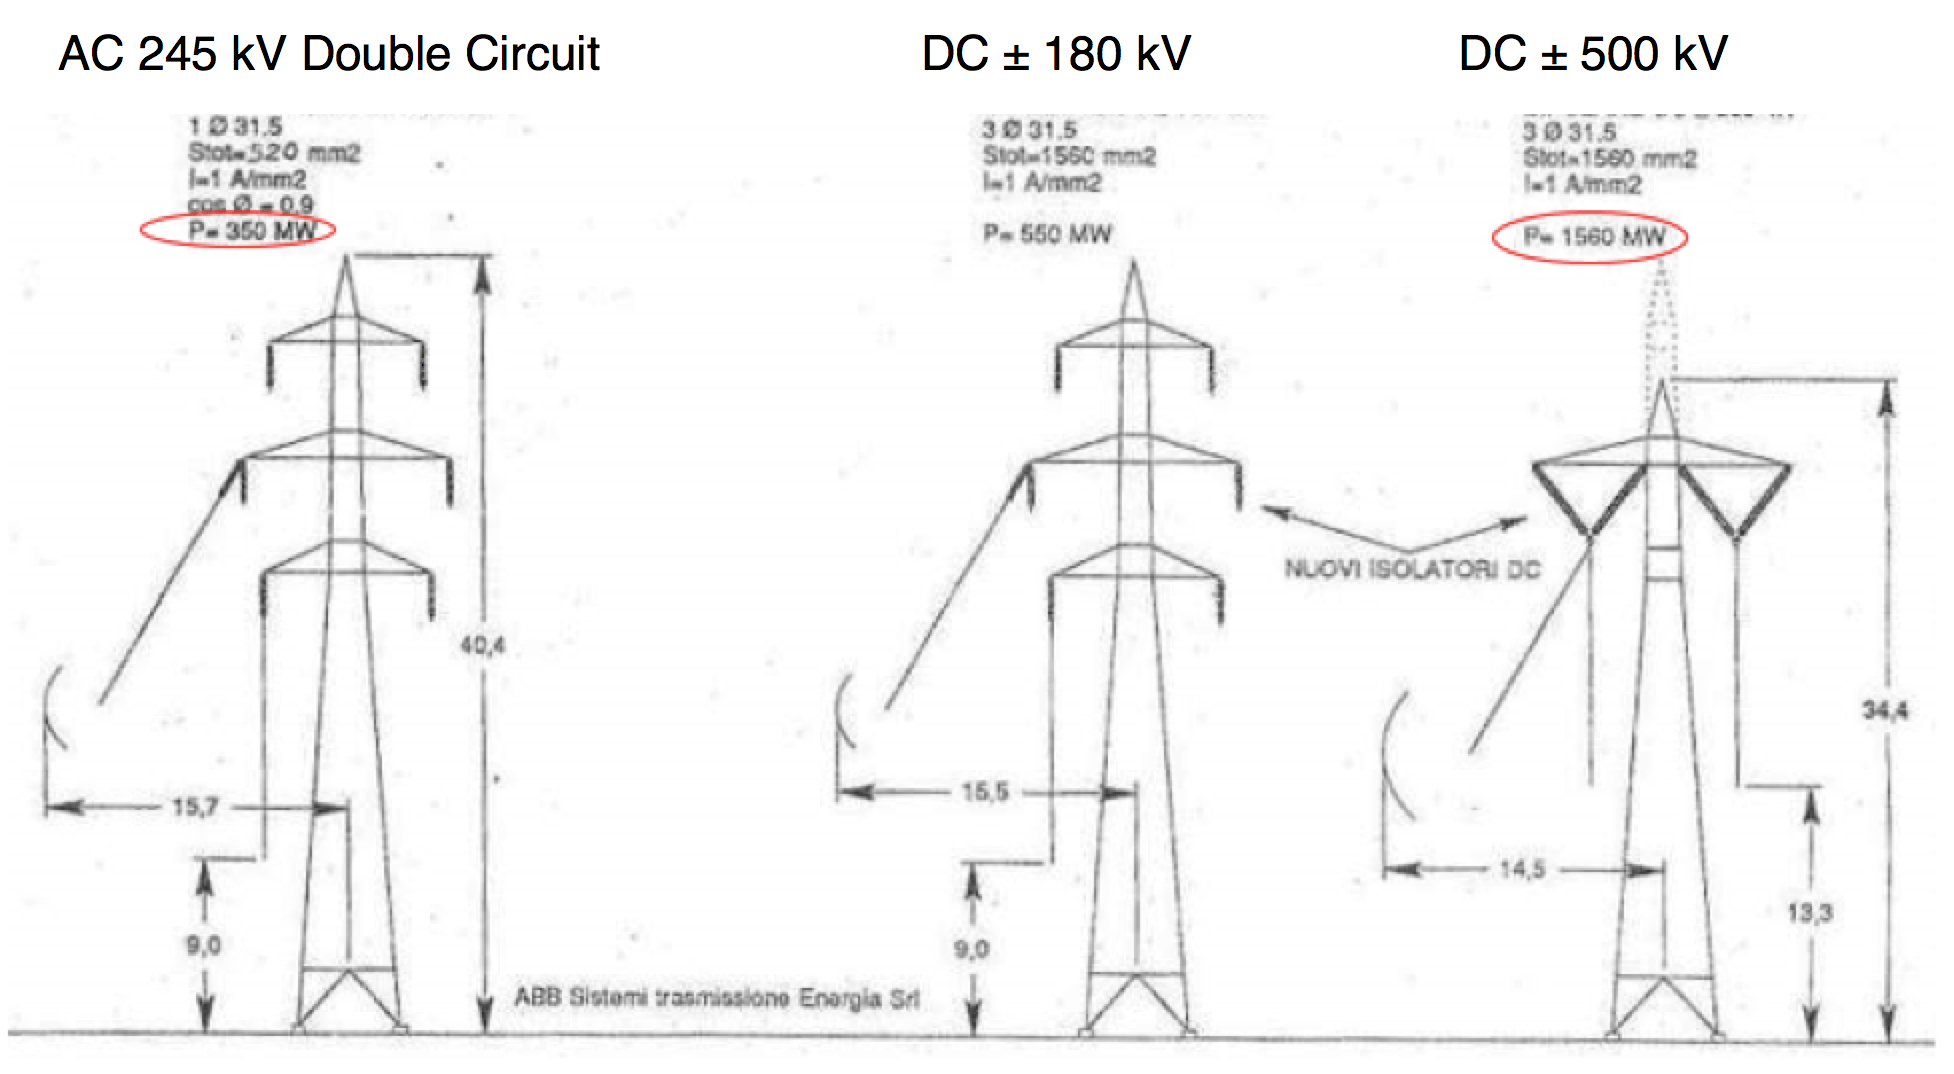 electrical power Trends in Electrical Power & Impact on T&D Systems (Part 3 of 3) Possible transformations of Italian 245 kV AC line to HVDC